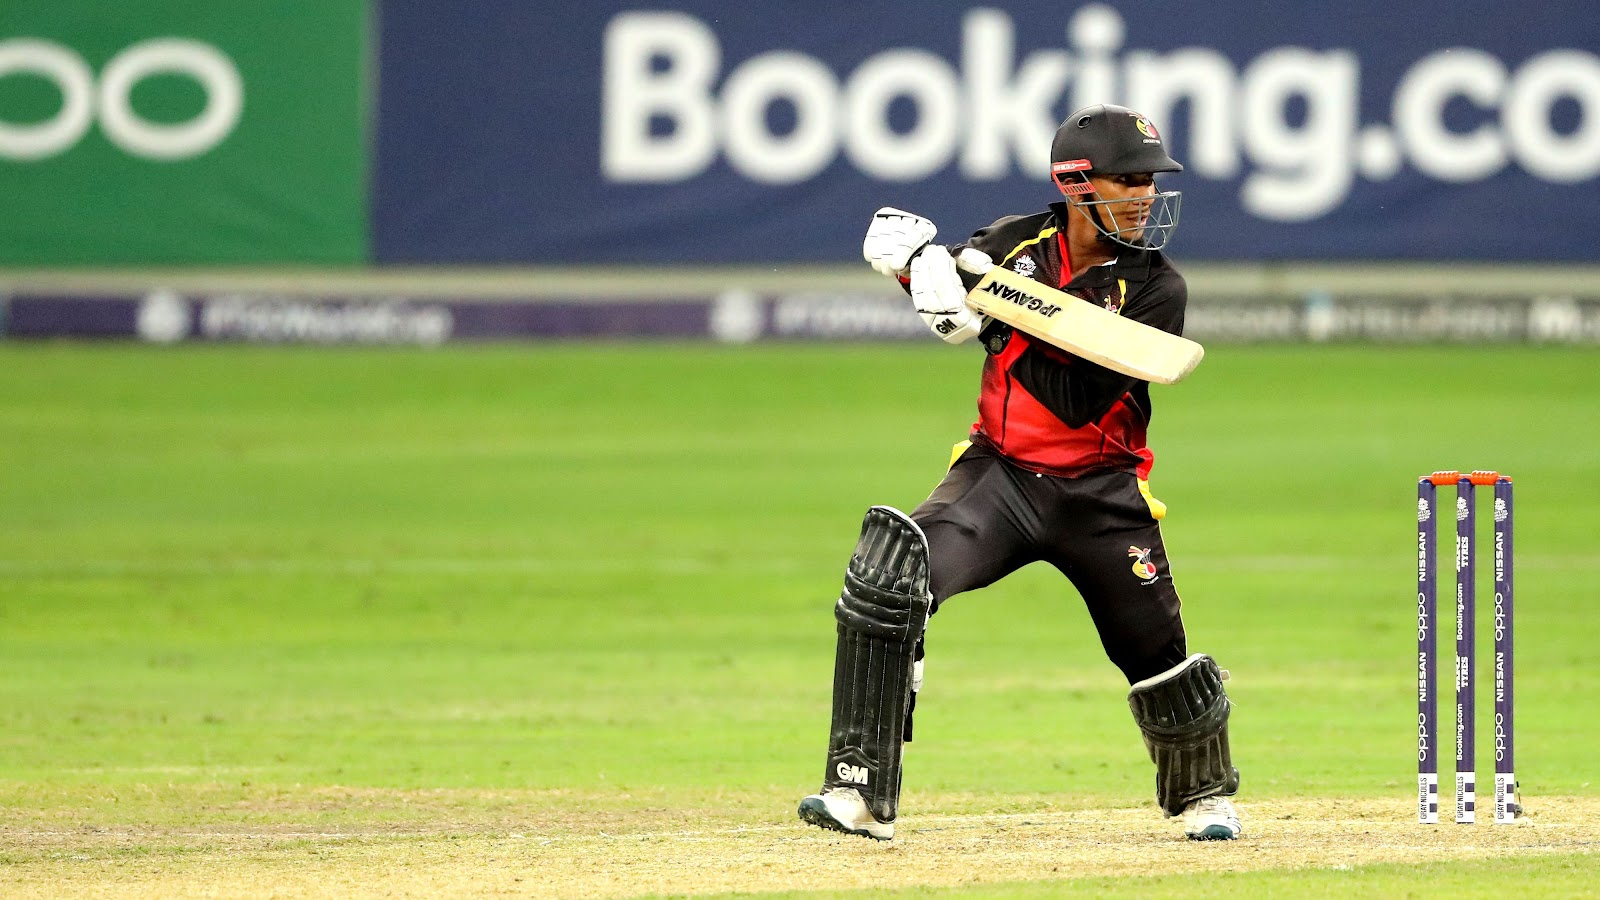 CJ Amini at the T20 World Cup Qualifier